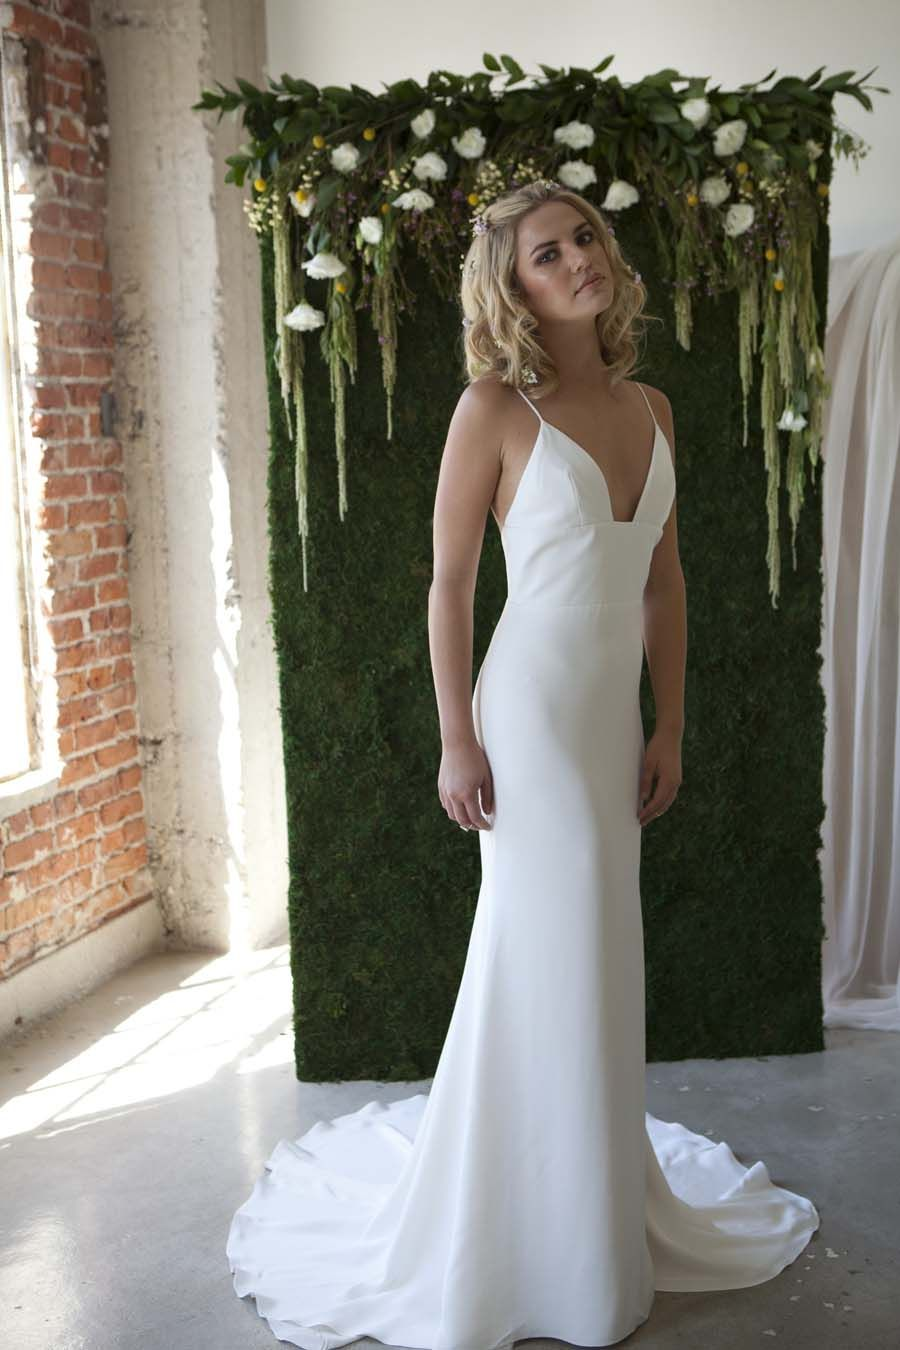 Tara lauren bridal collection mariage pinterest bridal